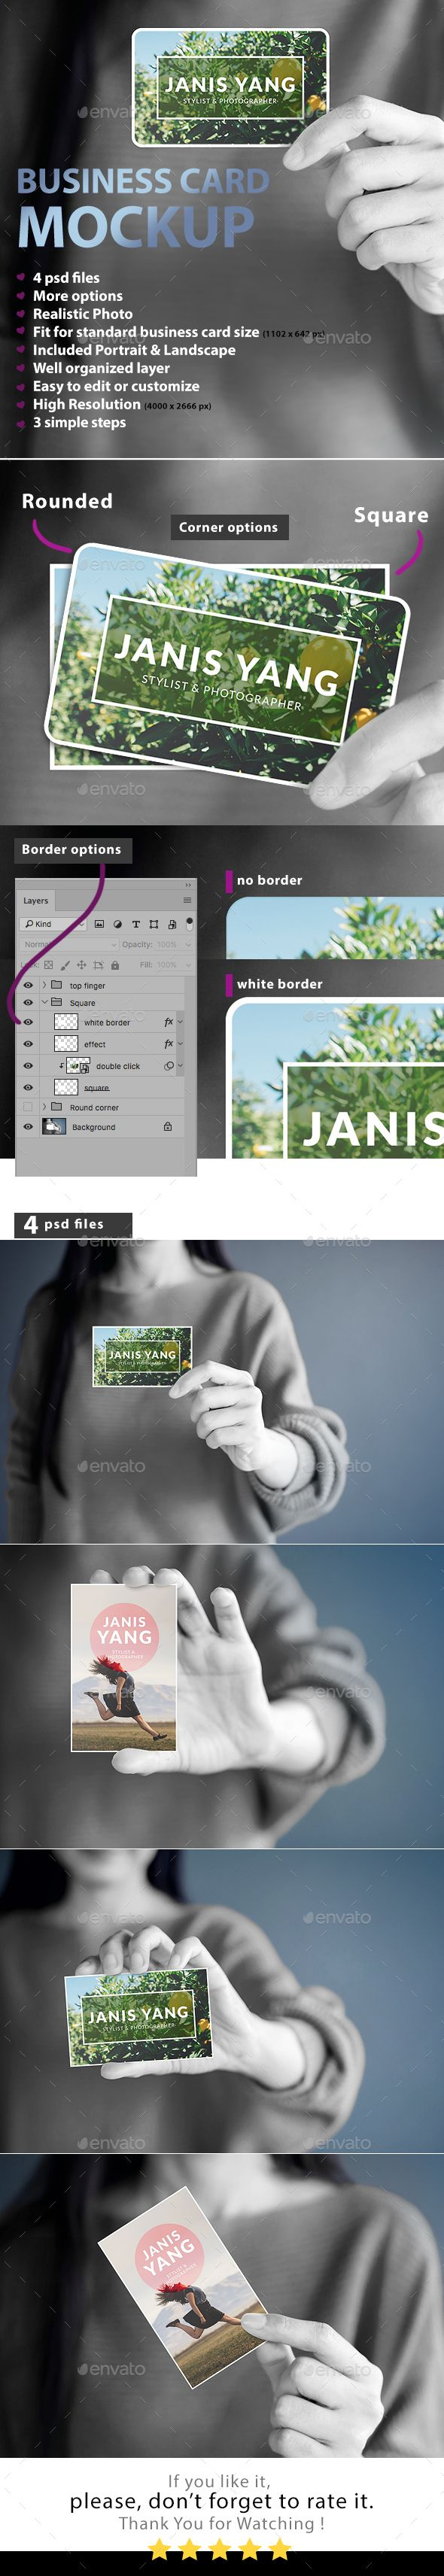 Business card mockup mockup business cards and business business card mockup business cards print reheart Choice Image